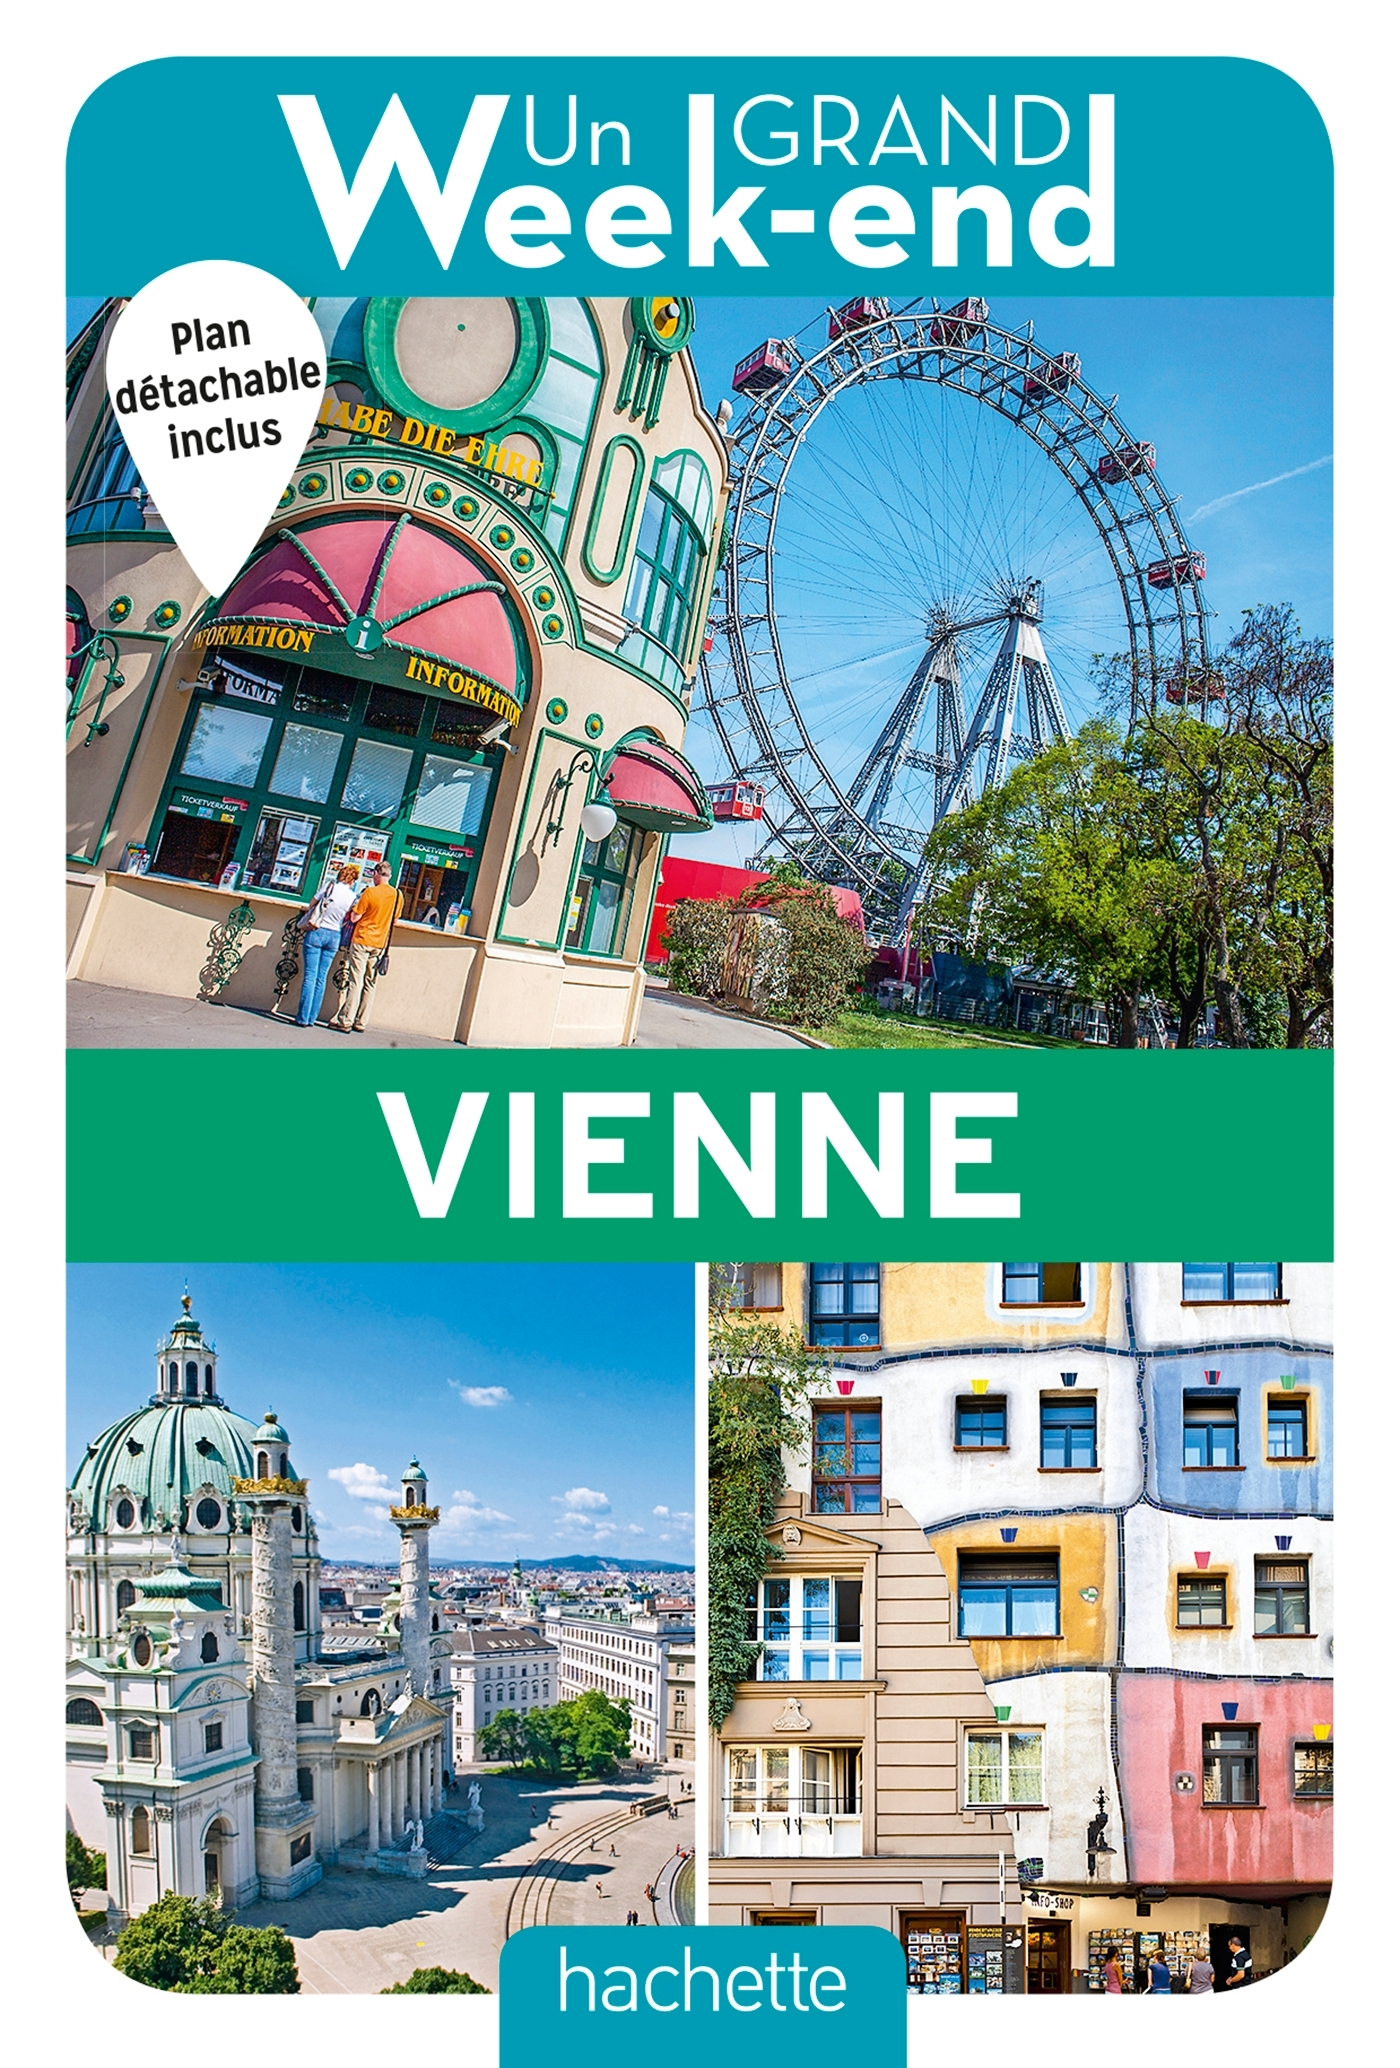 GUIDE UN GRAND WEEK-END A VIENNE